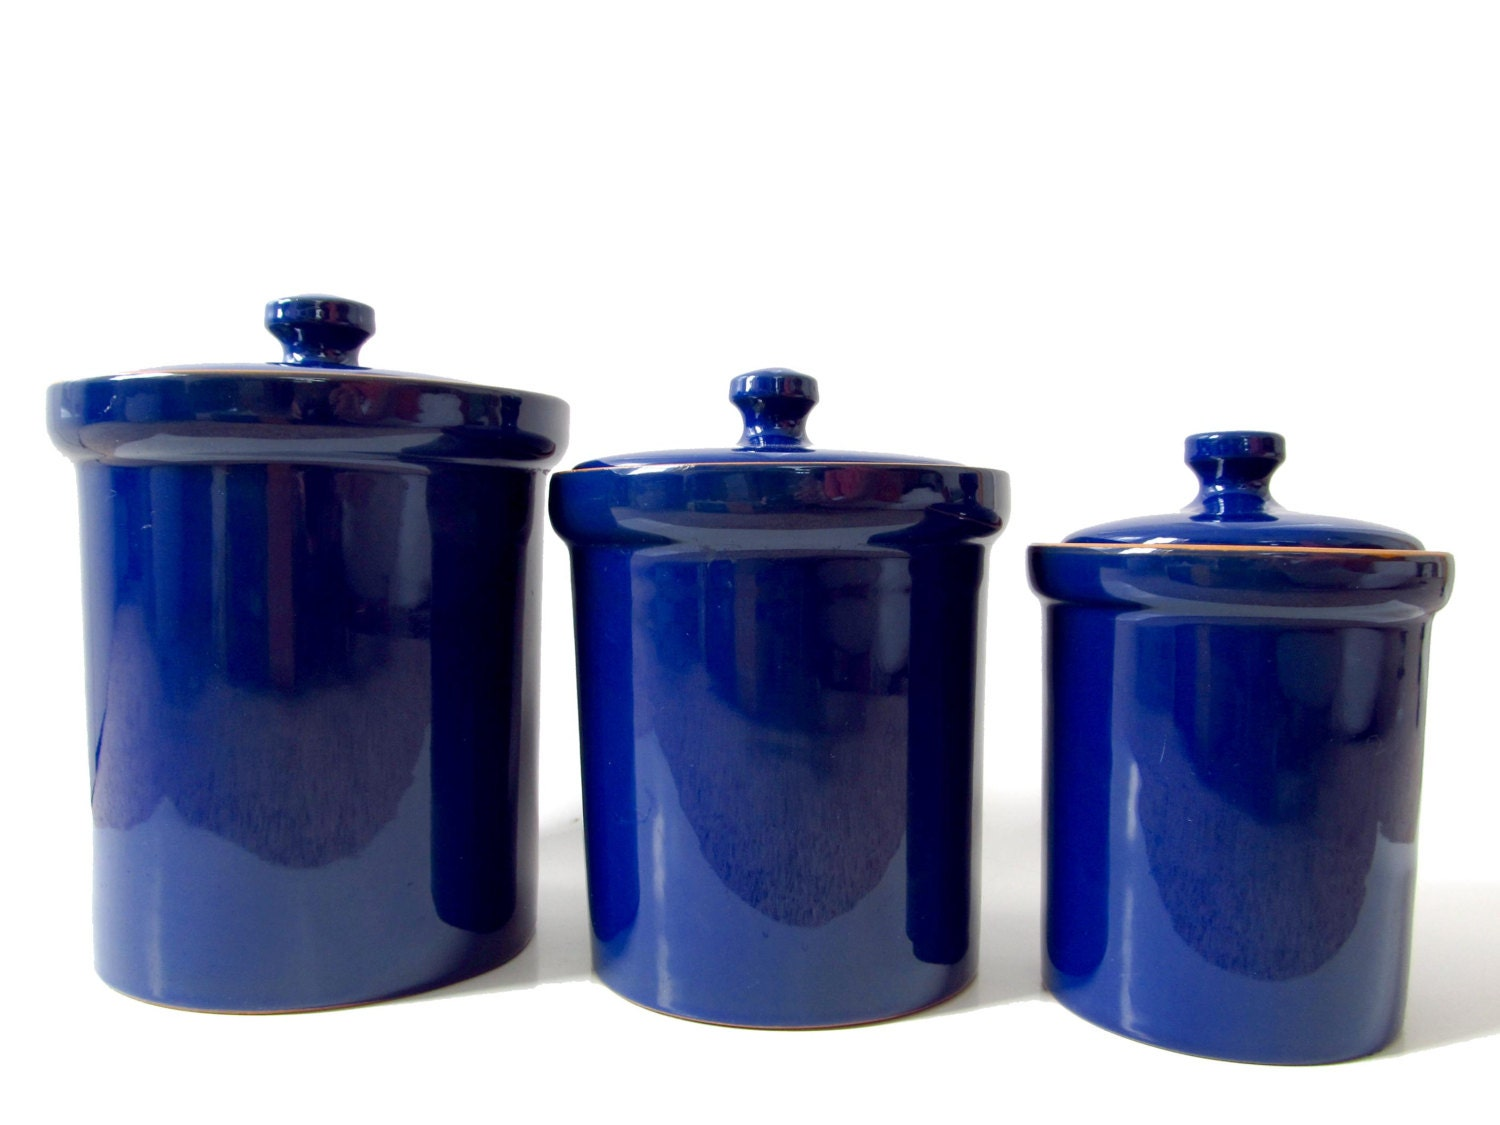 cobalt blue ceramic canister set made in italy italian kitchen martha stewart collection blue canisters set of 4 thisnext